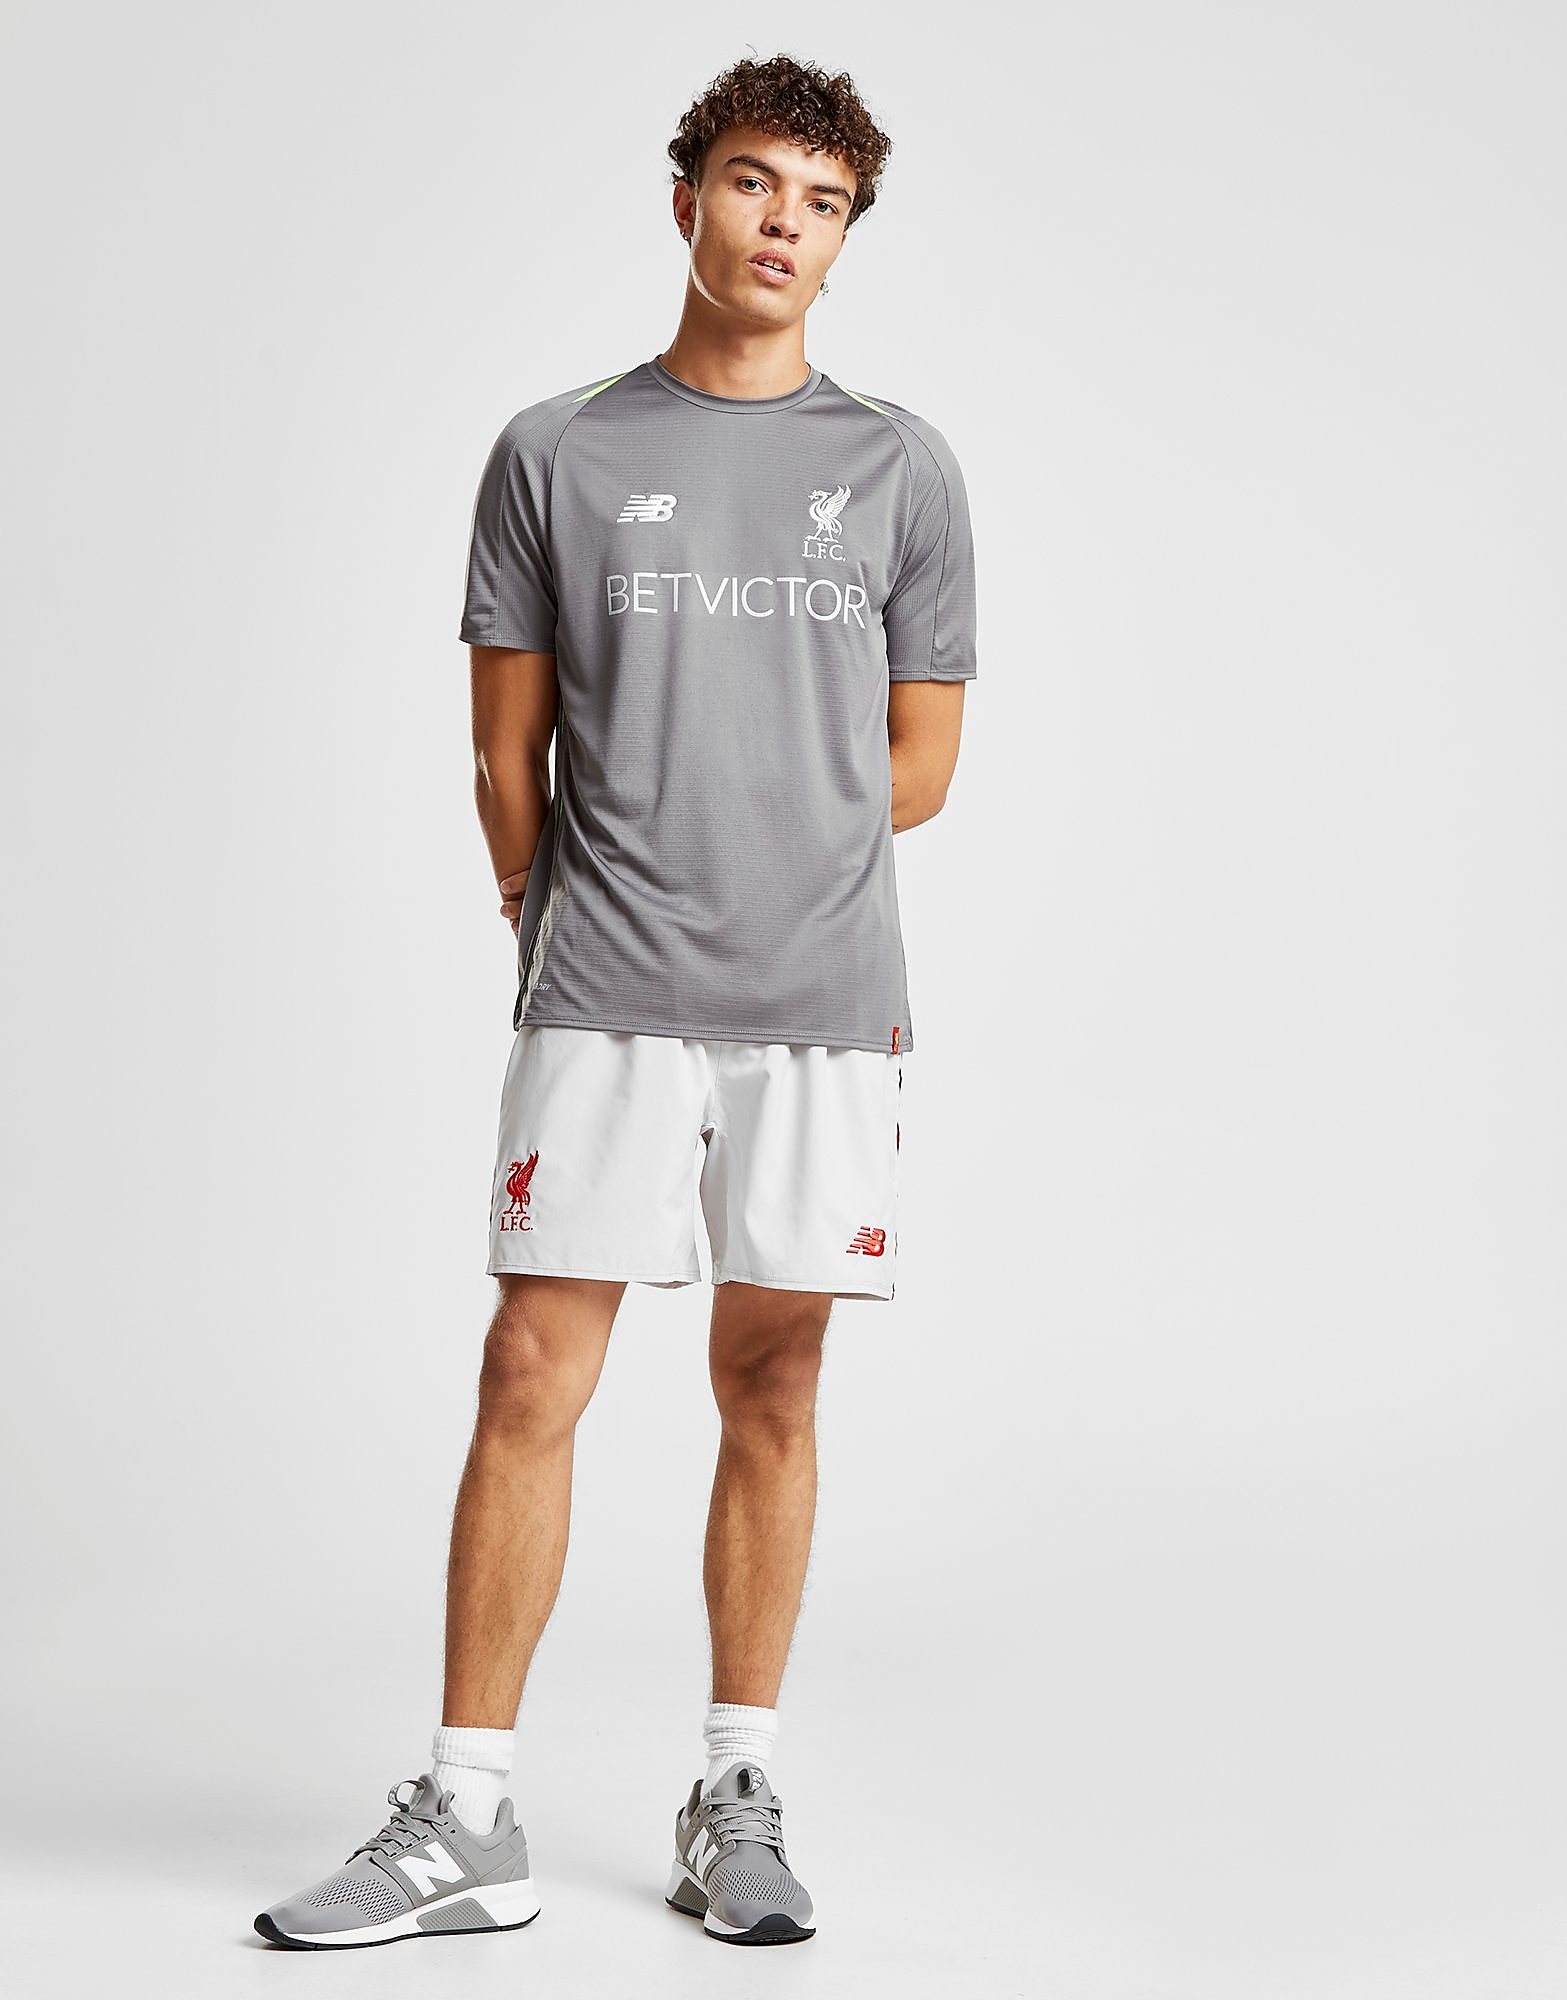 New Balance Liverpool FC Training Shirt